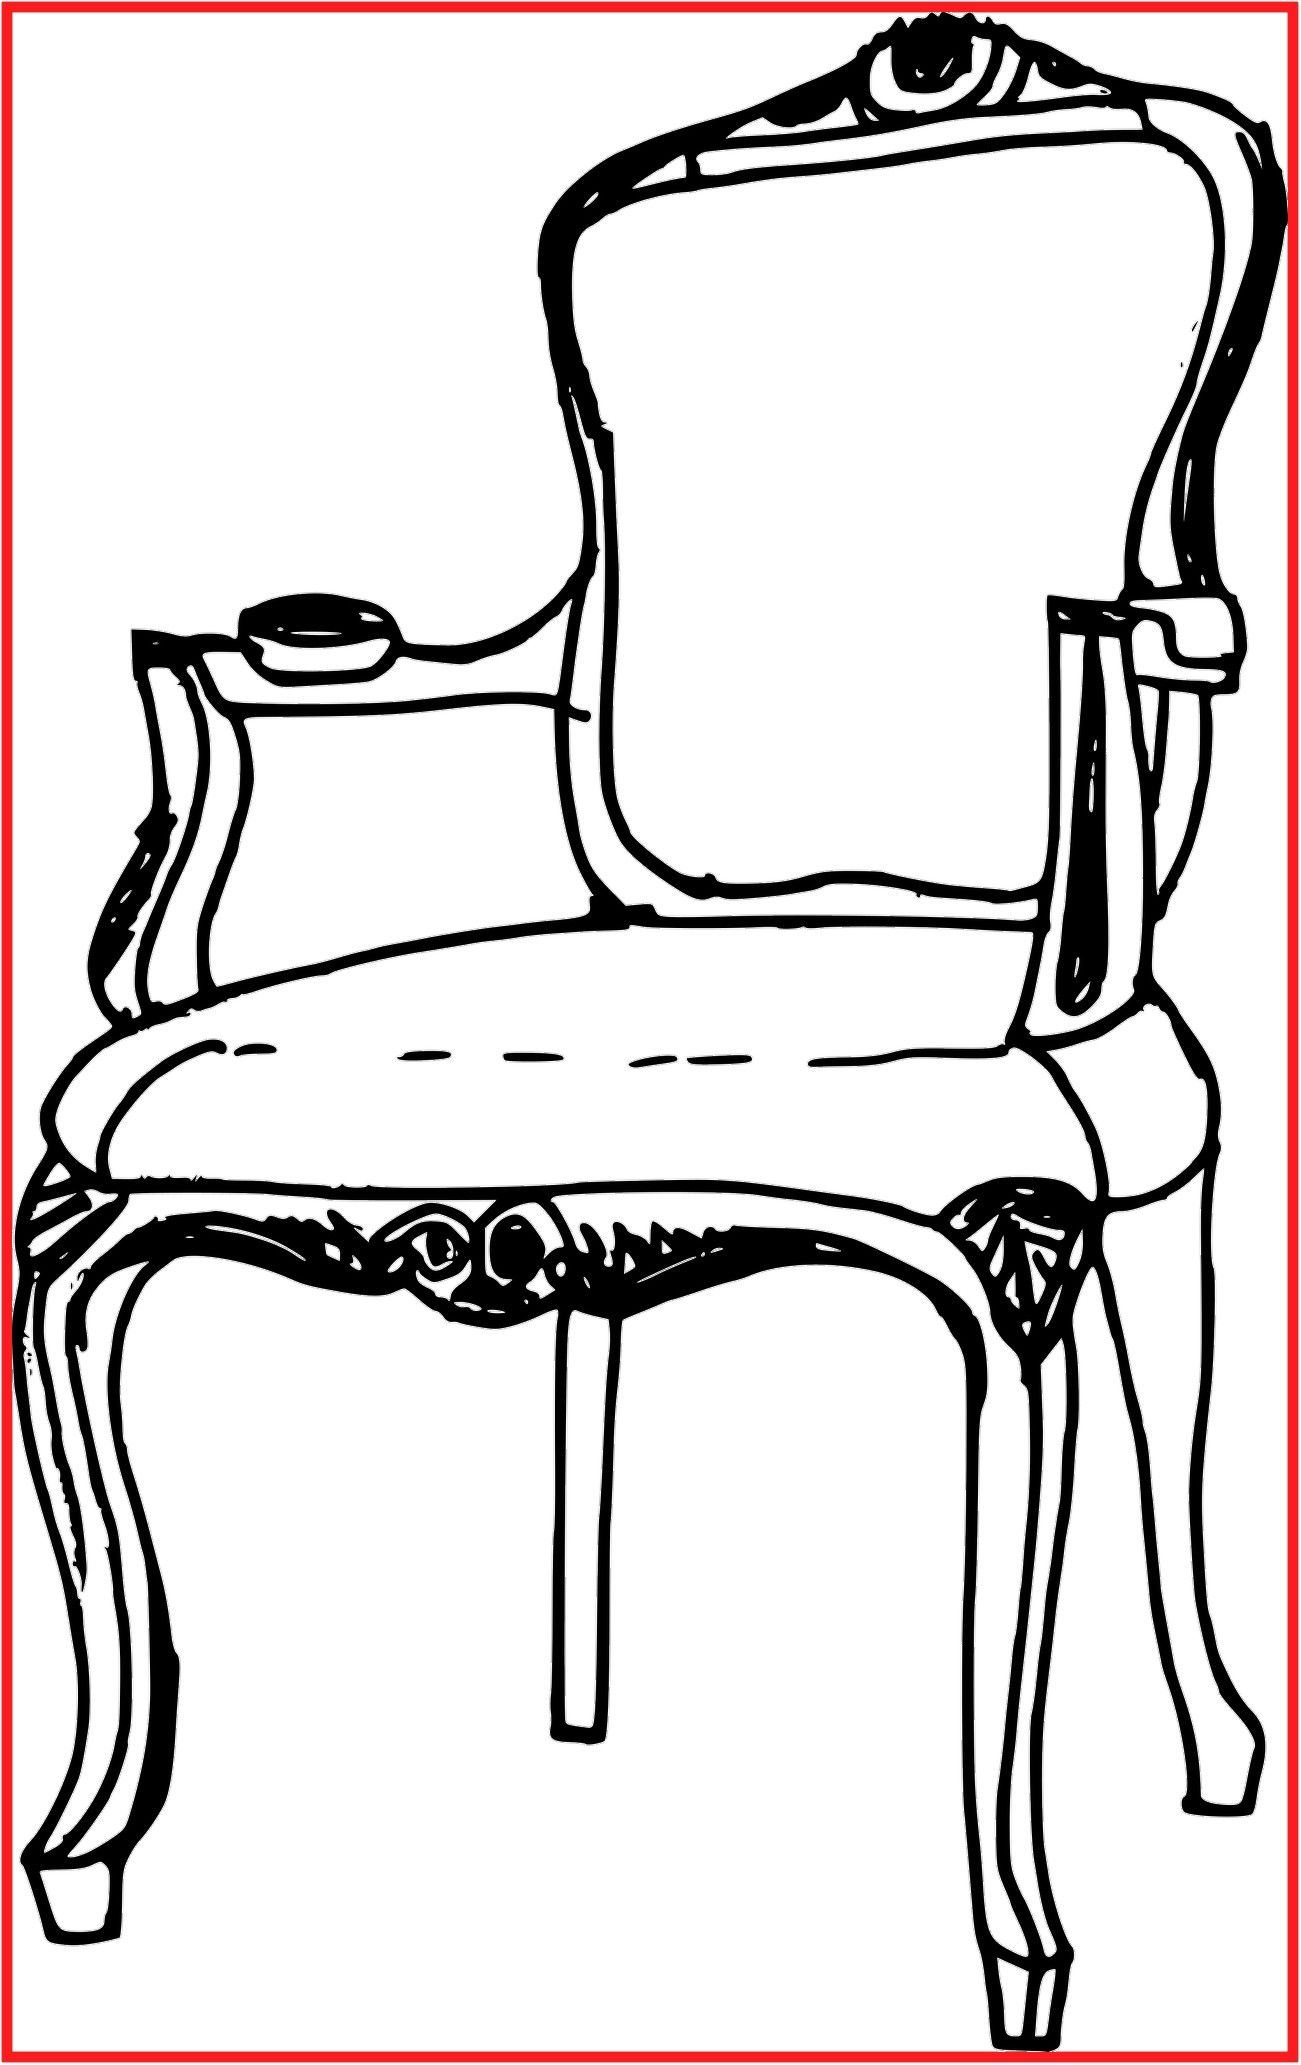 111 Reference Of Chair Drawing Art In 2020 Chair Drawing Chair Antique Chairs